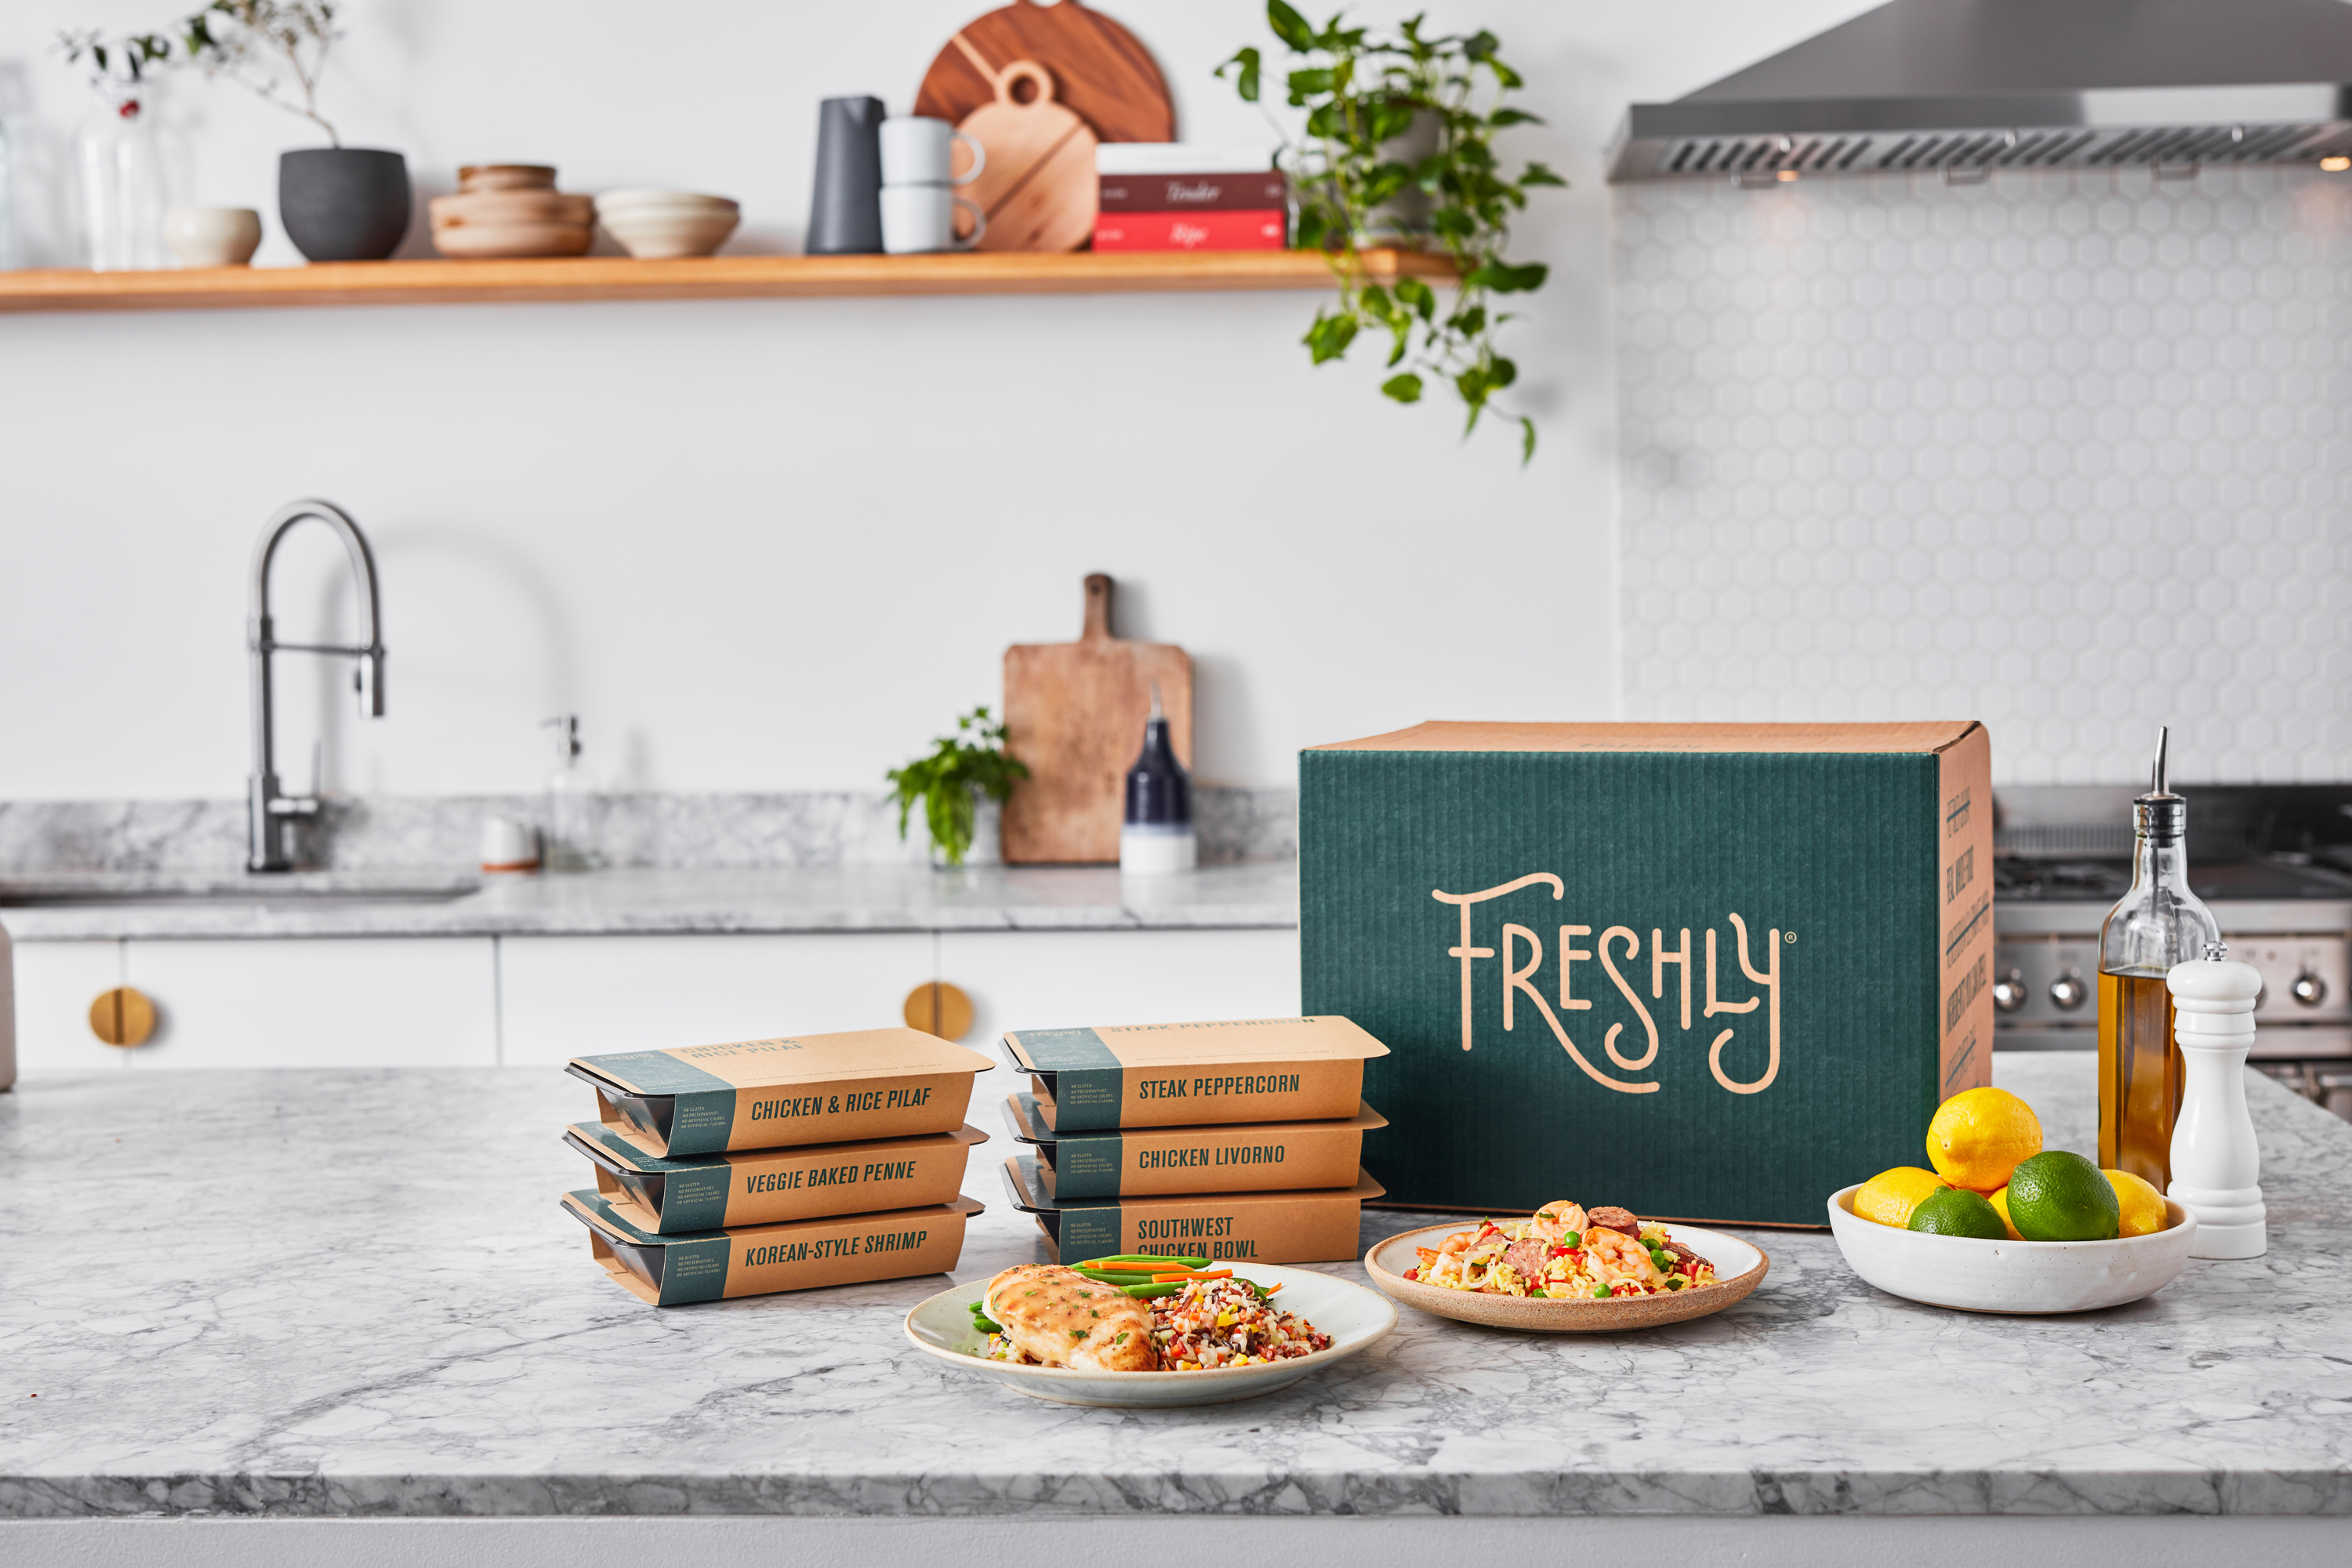 Freshly CMO Mayur Gupta discusses the meal delivery company's plans on Ad Age's 'Marketer's Brief' podcast